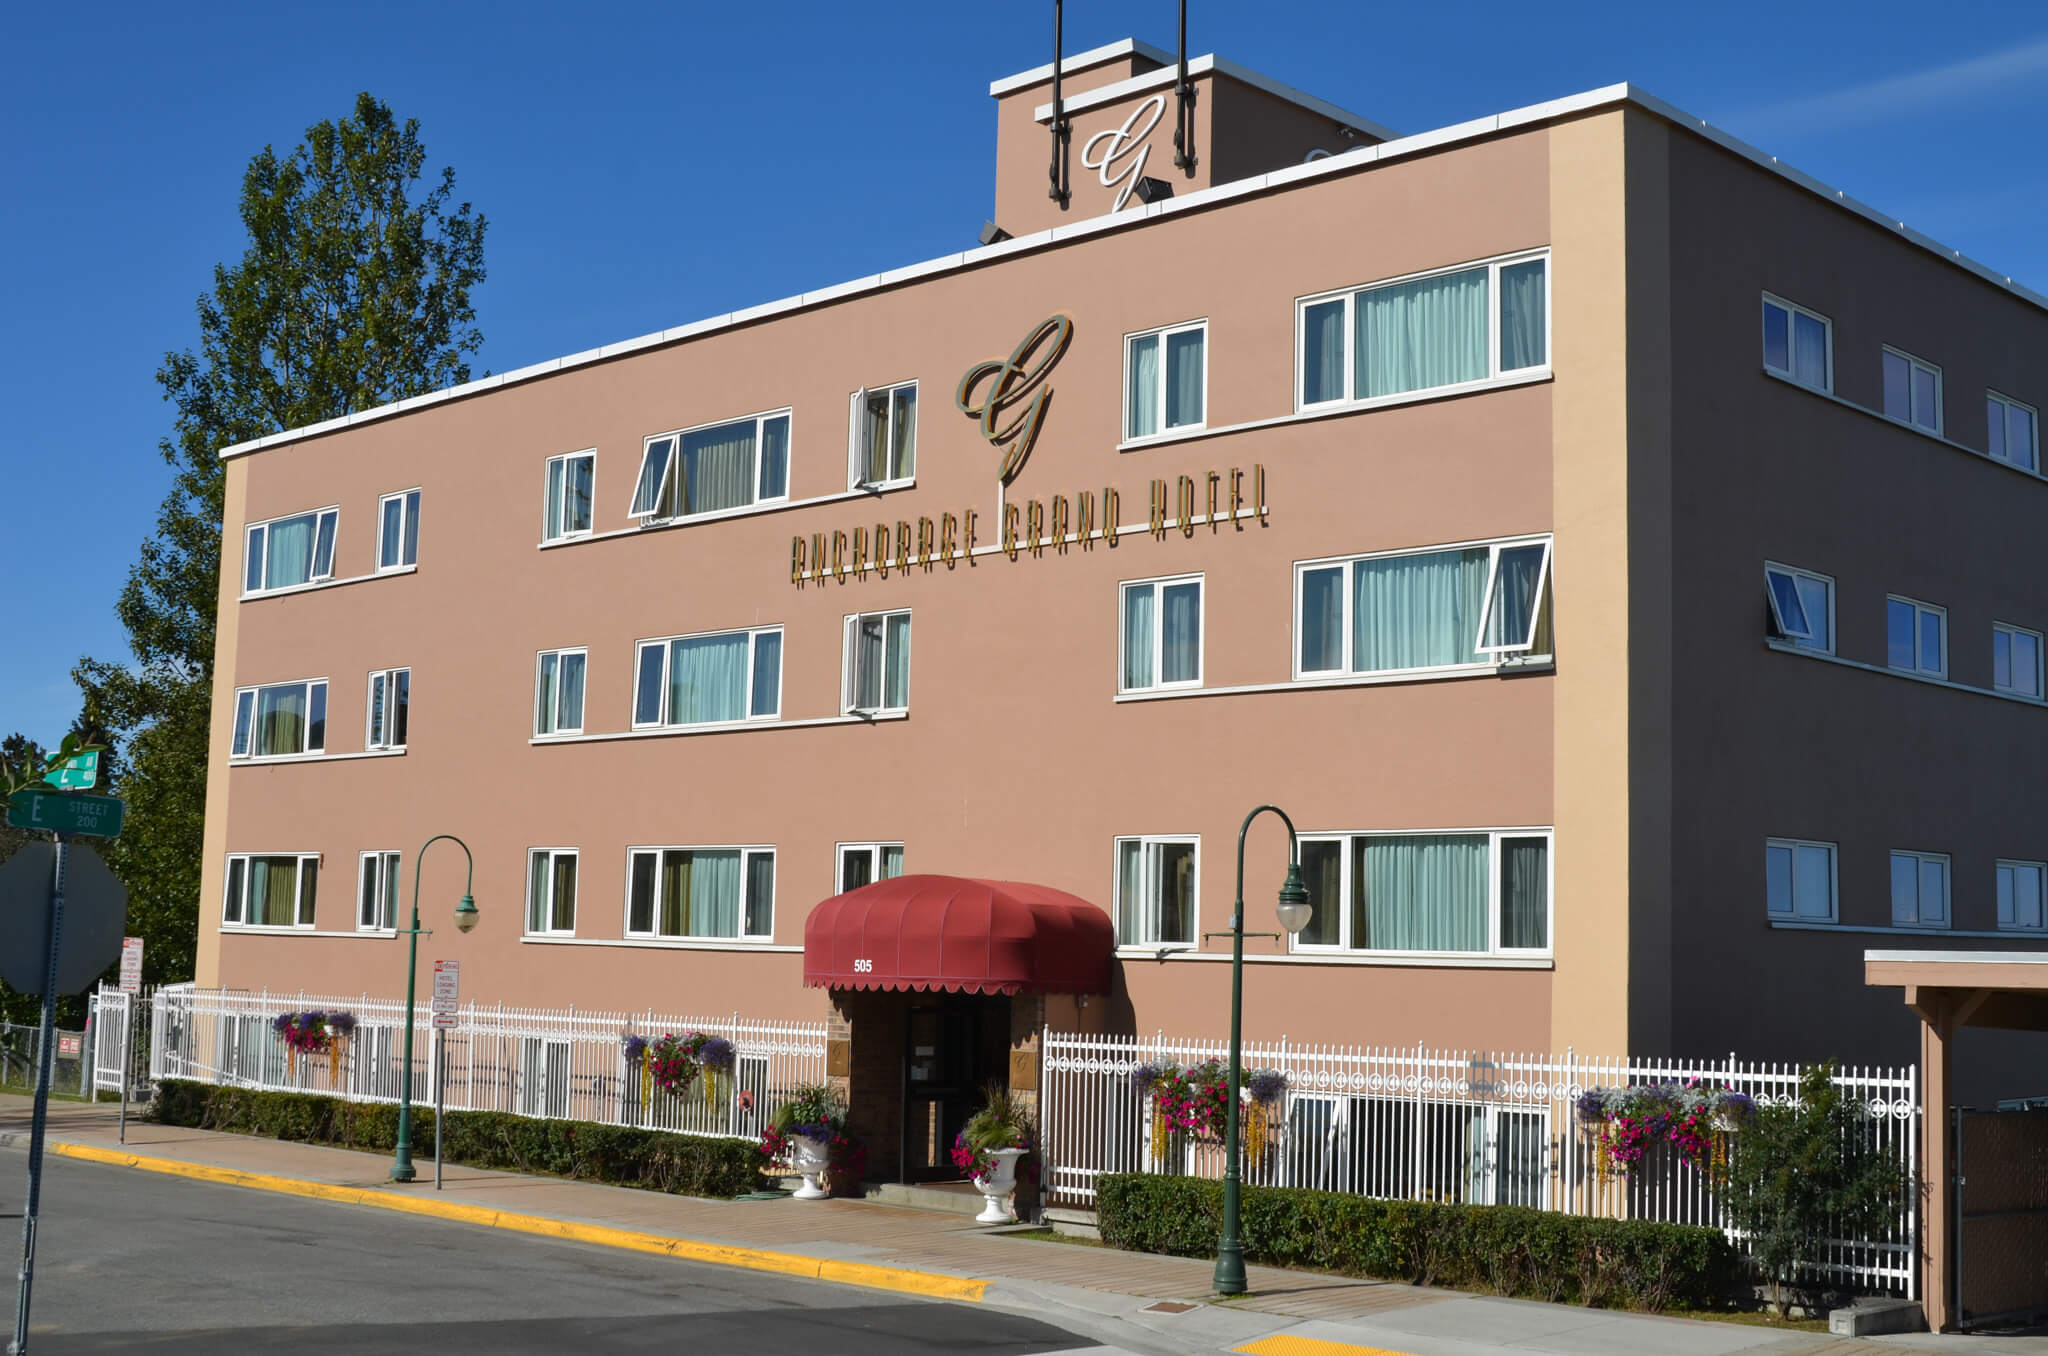 offers an affordable stay in the heart of Anchorage